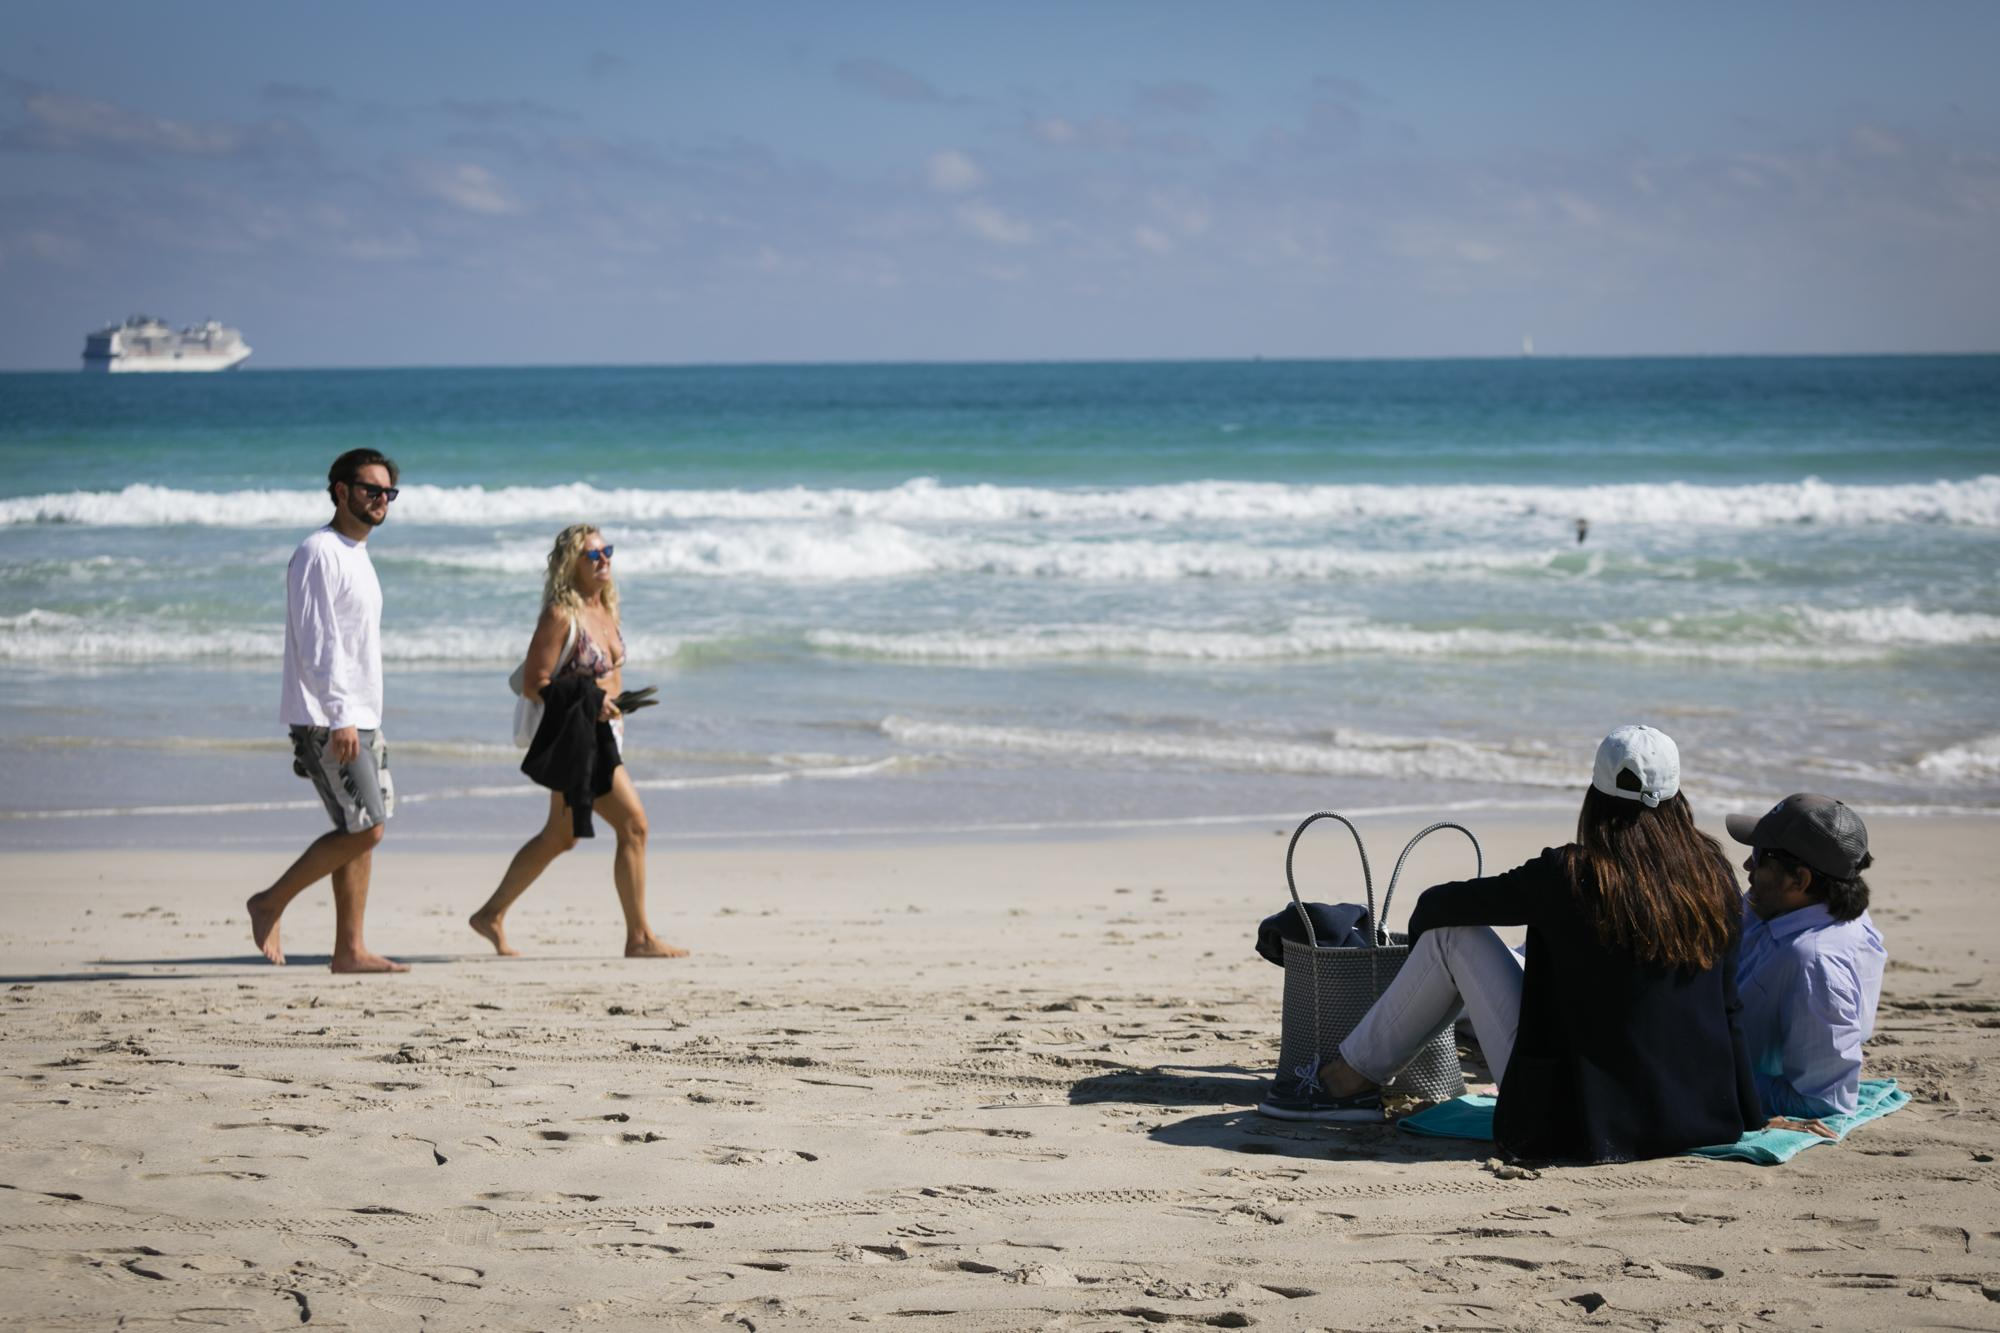 People are seen on the beach, in Miami Beach, Florida on January 10, 2021. Eva Marie UZCATEGUI